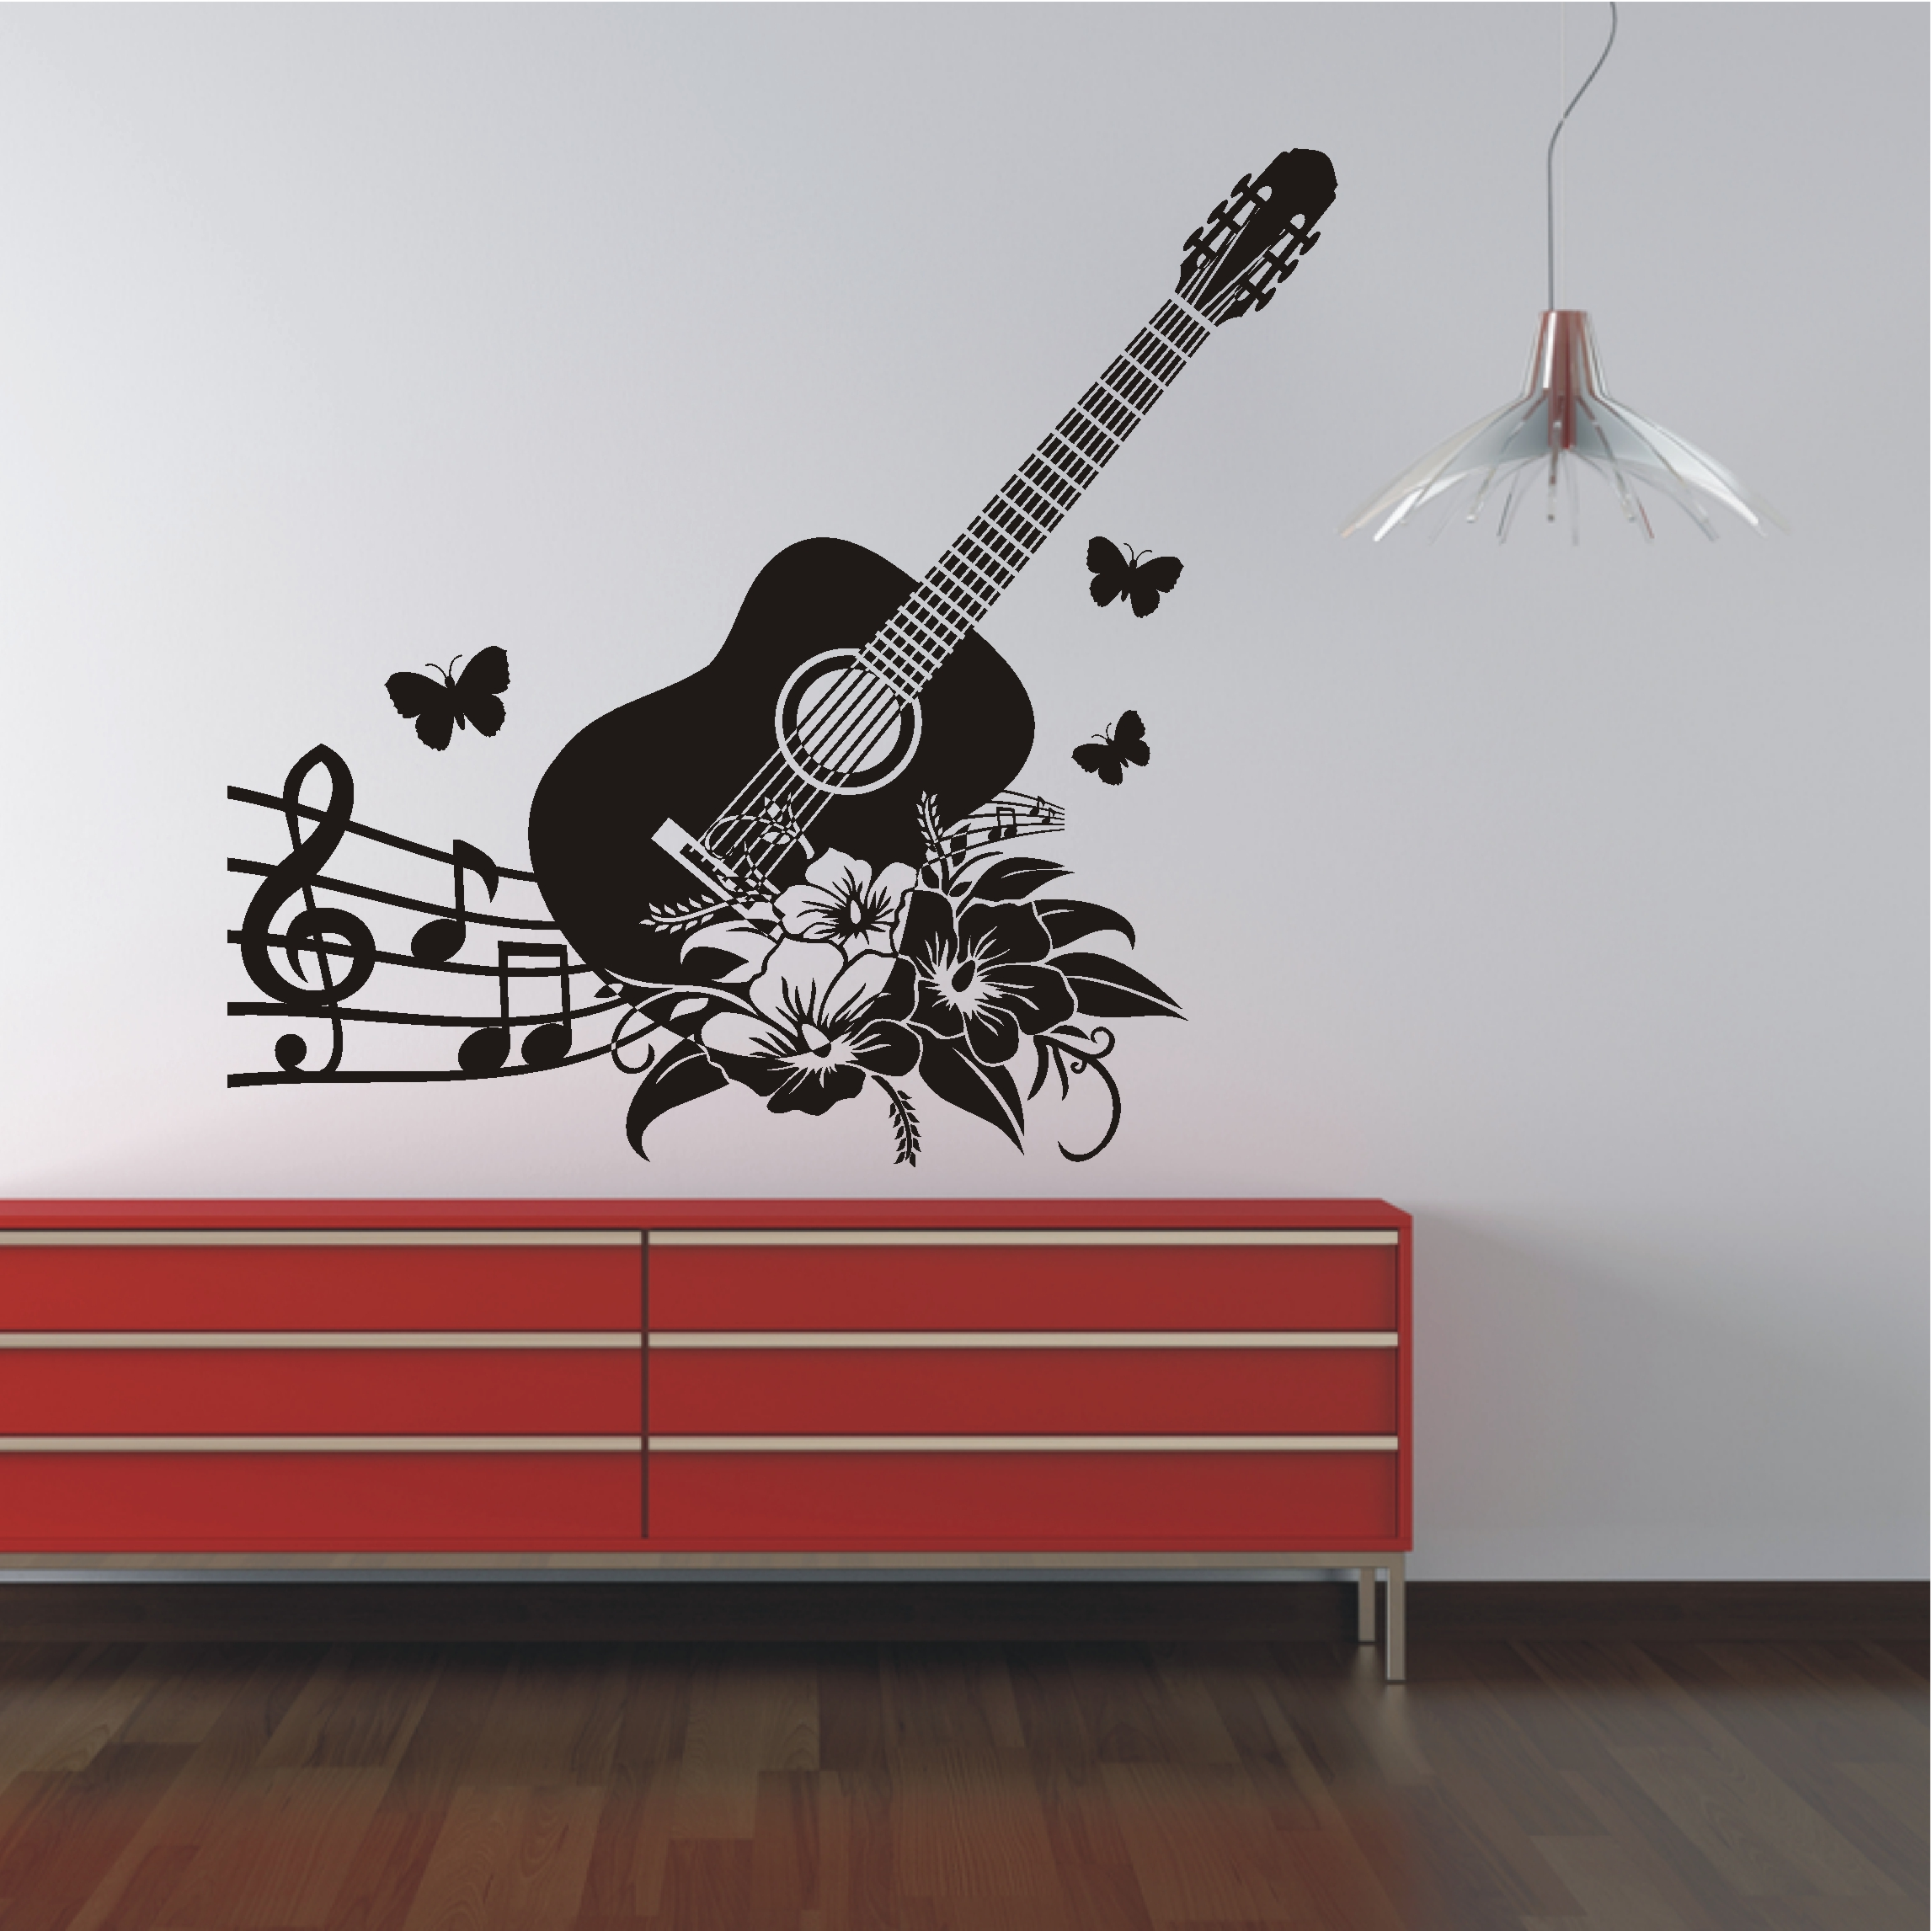 deko shop wandtattoo gitarre mit noten deko shop. Black Bedroom Furniture Sets. Home Design Ideas